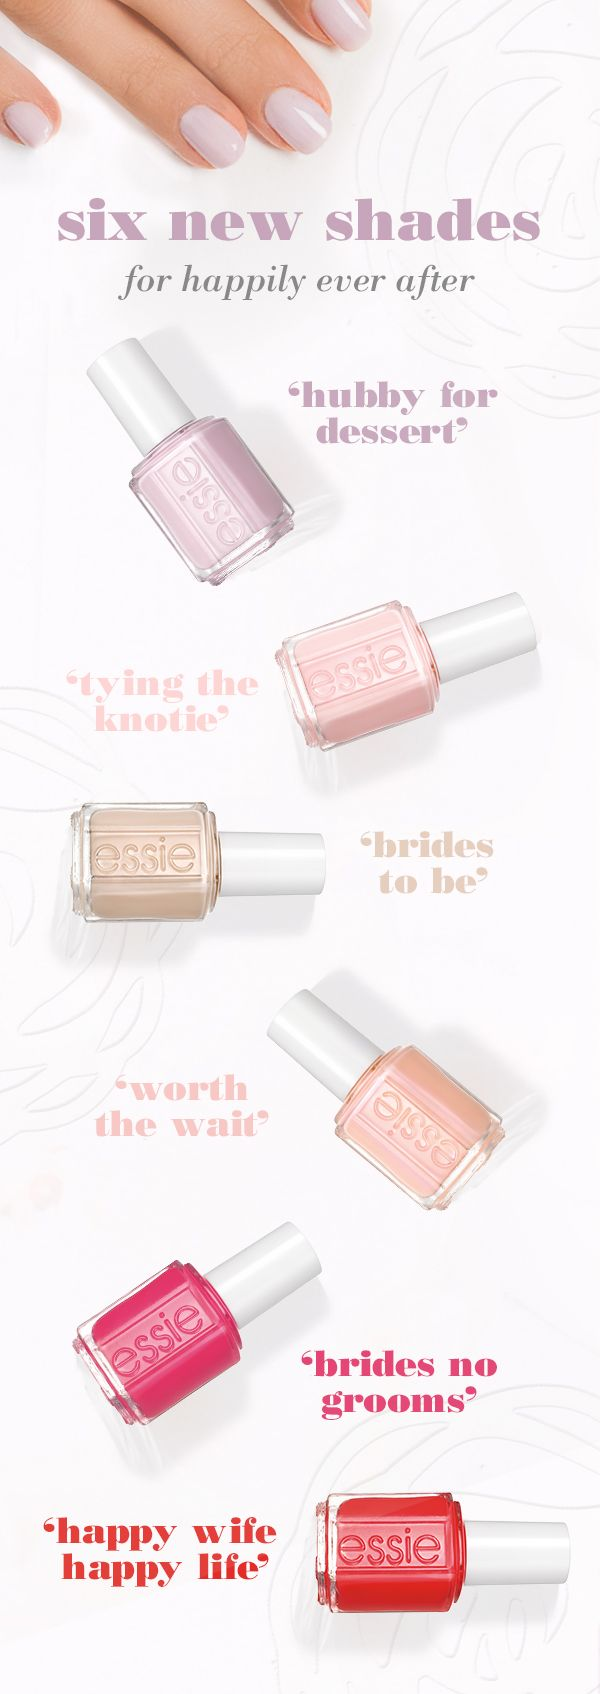 Be ready for wedding season whether you're a bride or a bridesmaid with these fabulous shades from the essie 2015 bridal collection. From traditional pinks and nudes to bolder red polish, there are six new stunning shades for your wedding day manicure.